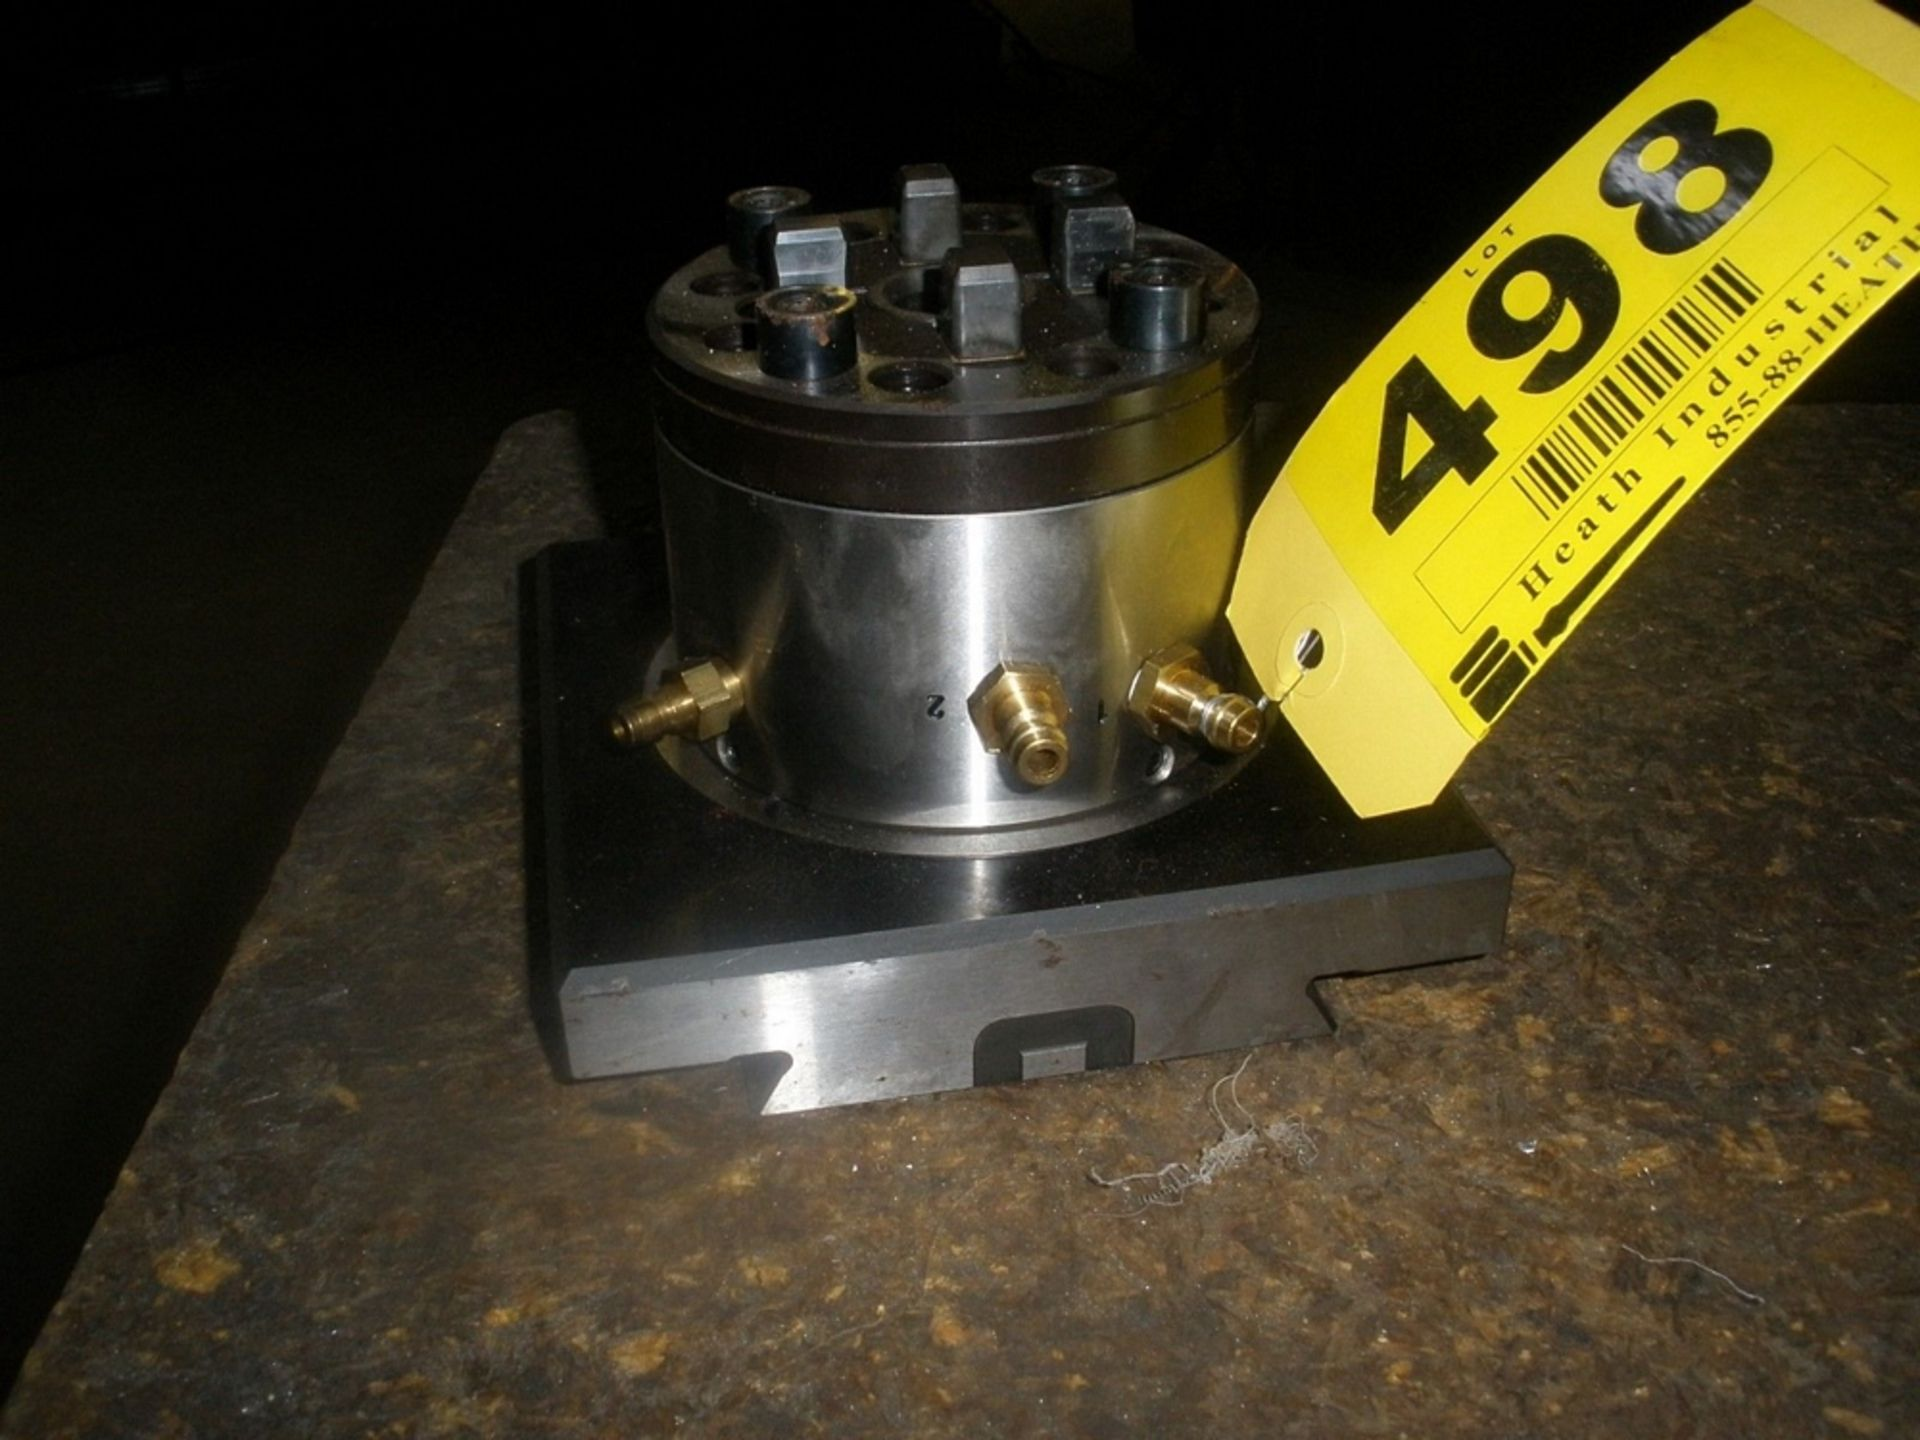 Lot 31 - System 3R Model 3R-607 EDM Automatic Chuck Maxi-Micro System 3R OEM 3R-607.1 Pneumatic Chuck Adapter